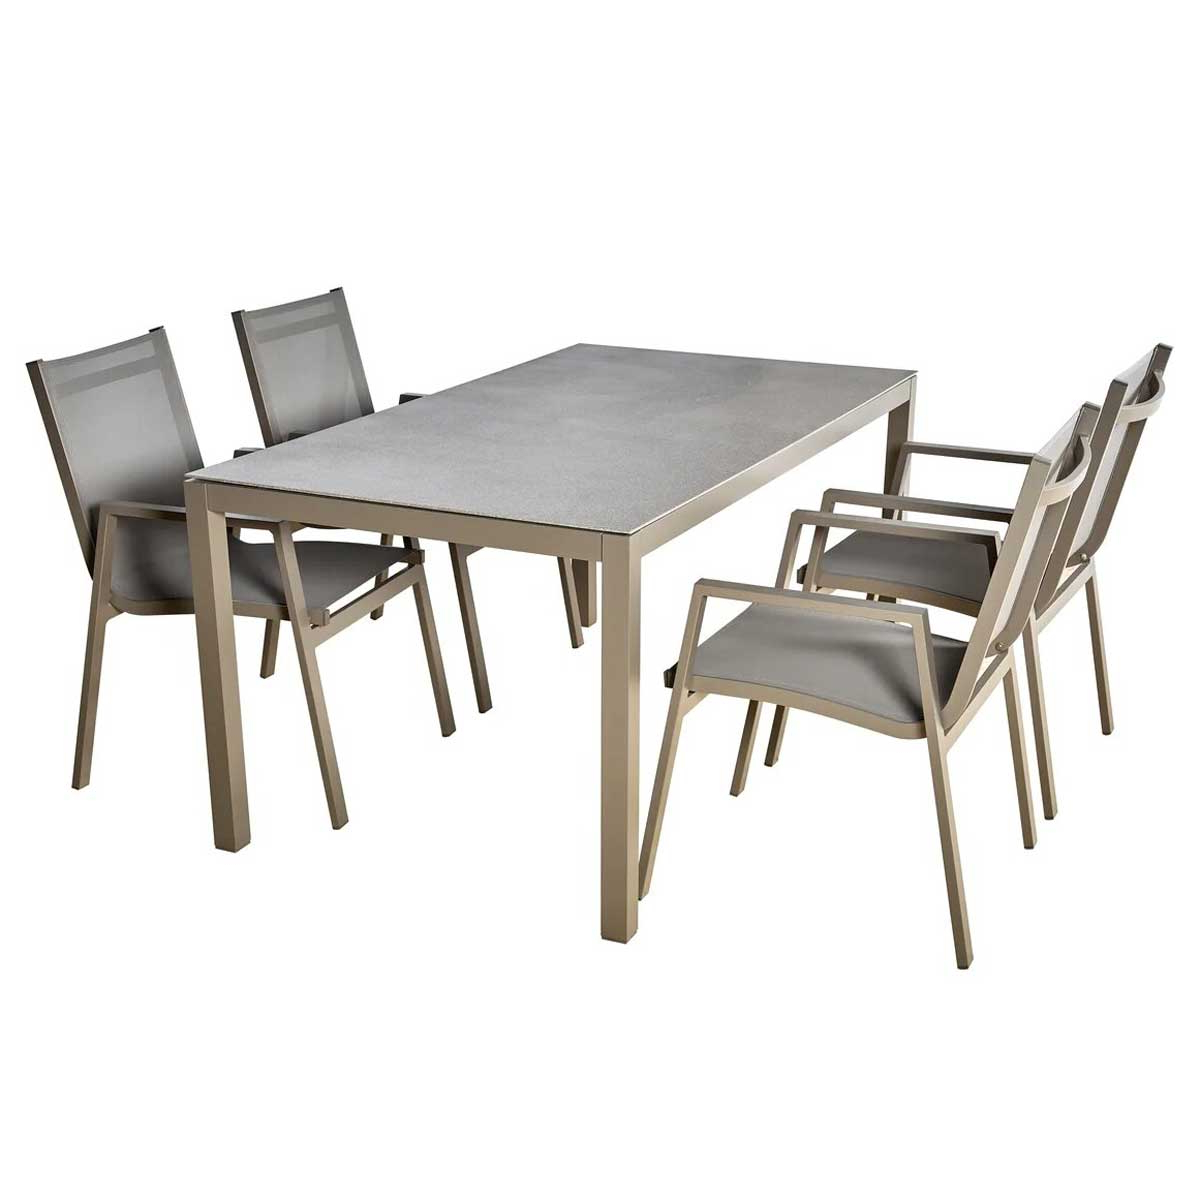 Latest Contemporary 4 Seating Oblong Dining Tables Pertaining To Siesta Group – Siesta Furniture S.l (View 15 of 30)